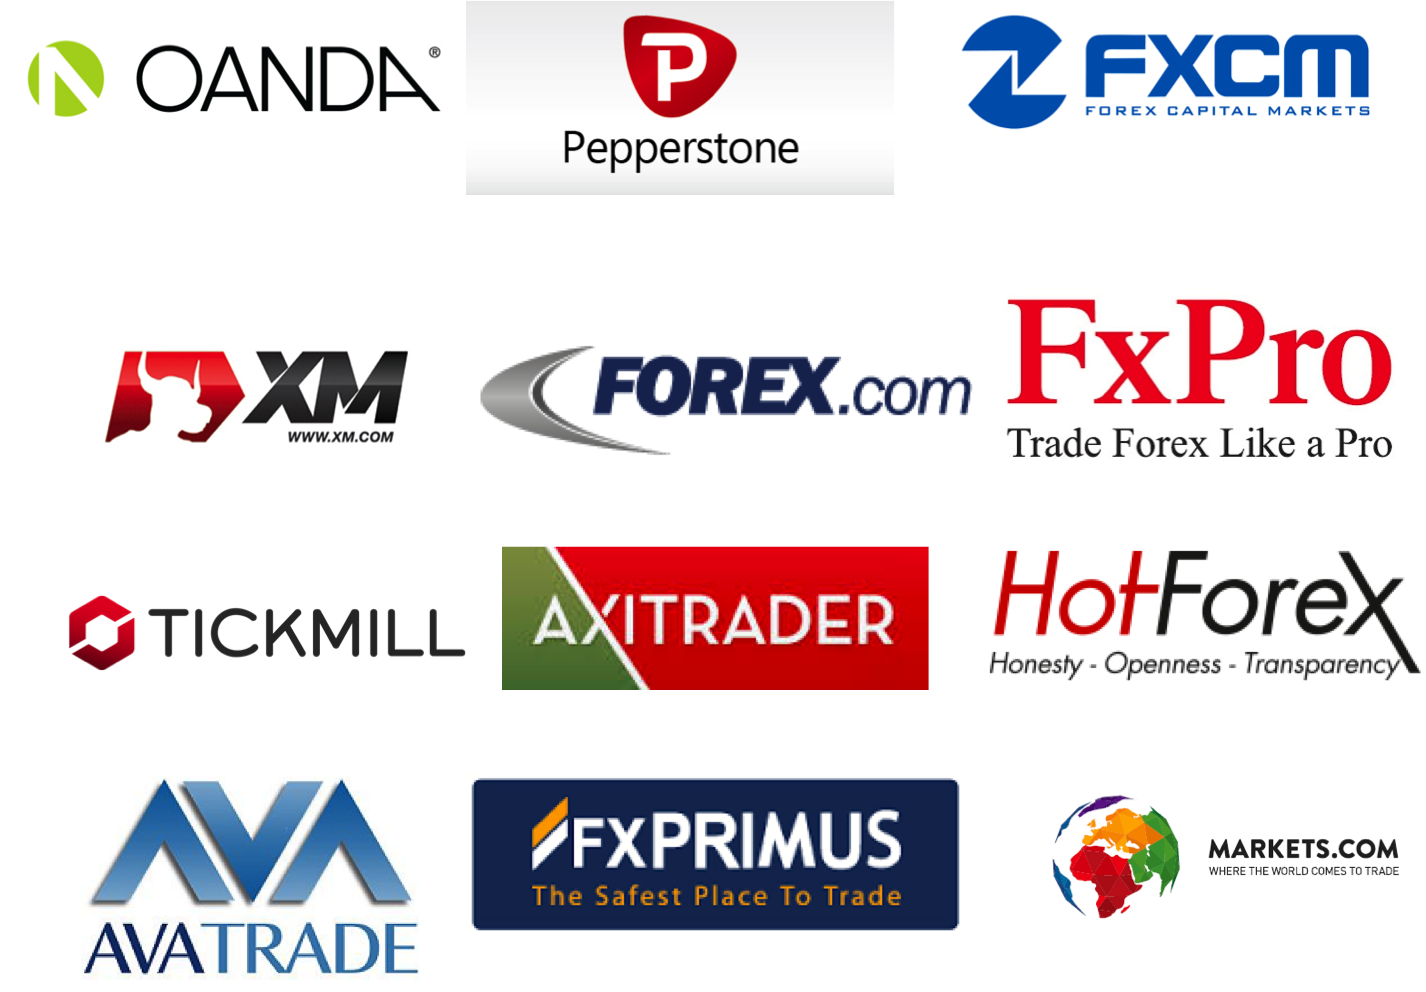 A Partial List of Participating Forex Brokers in our Forex Rebate Program